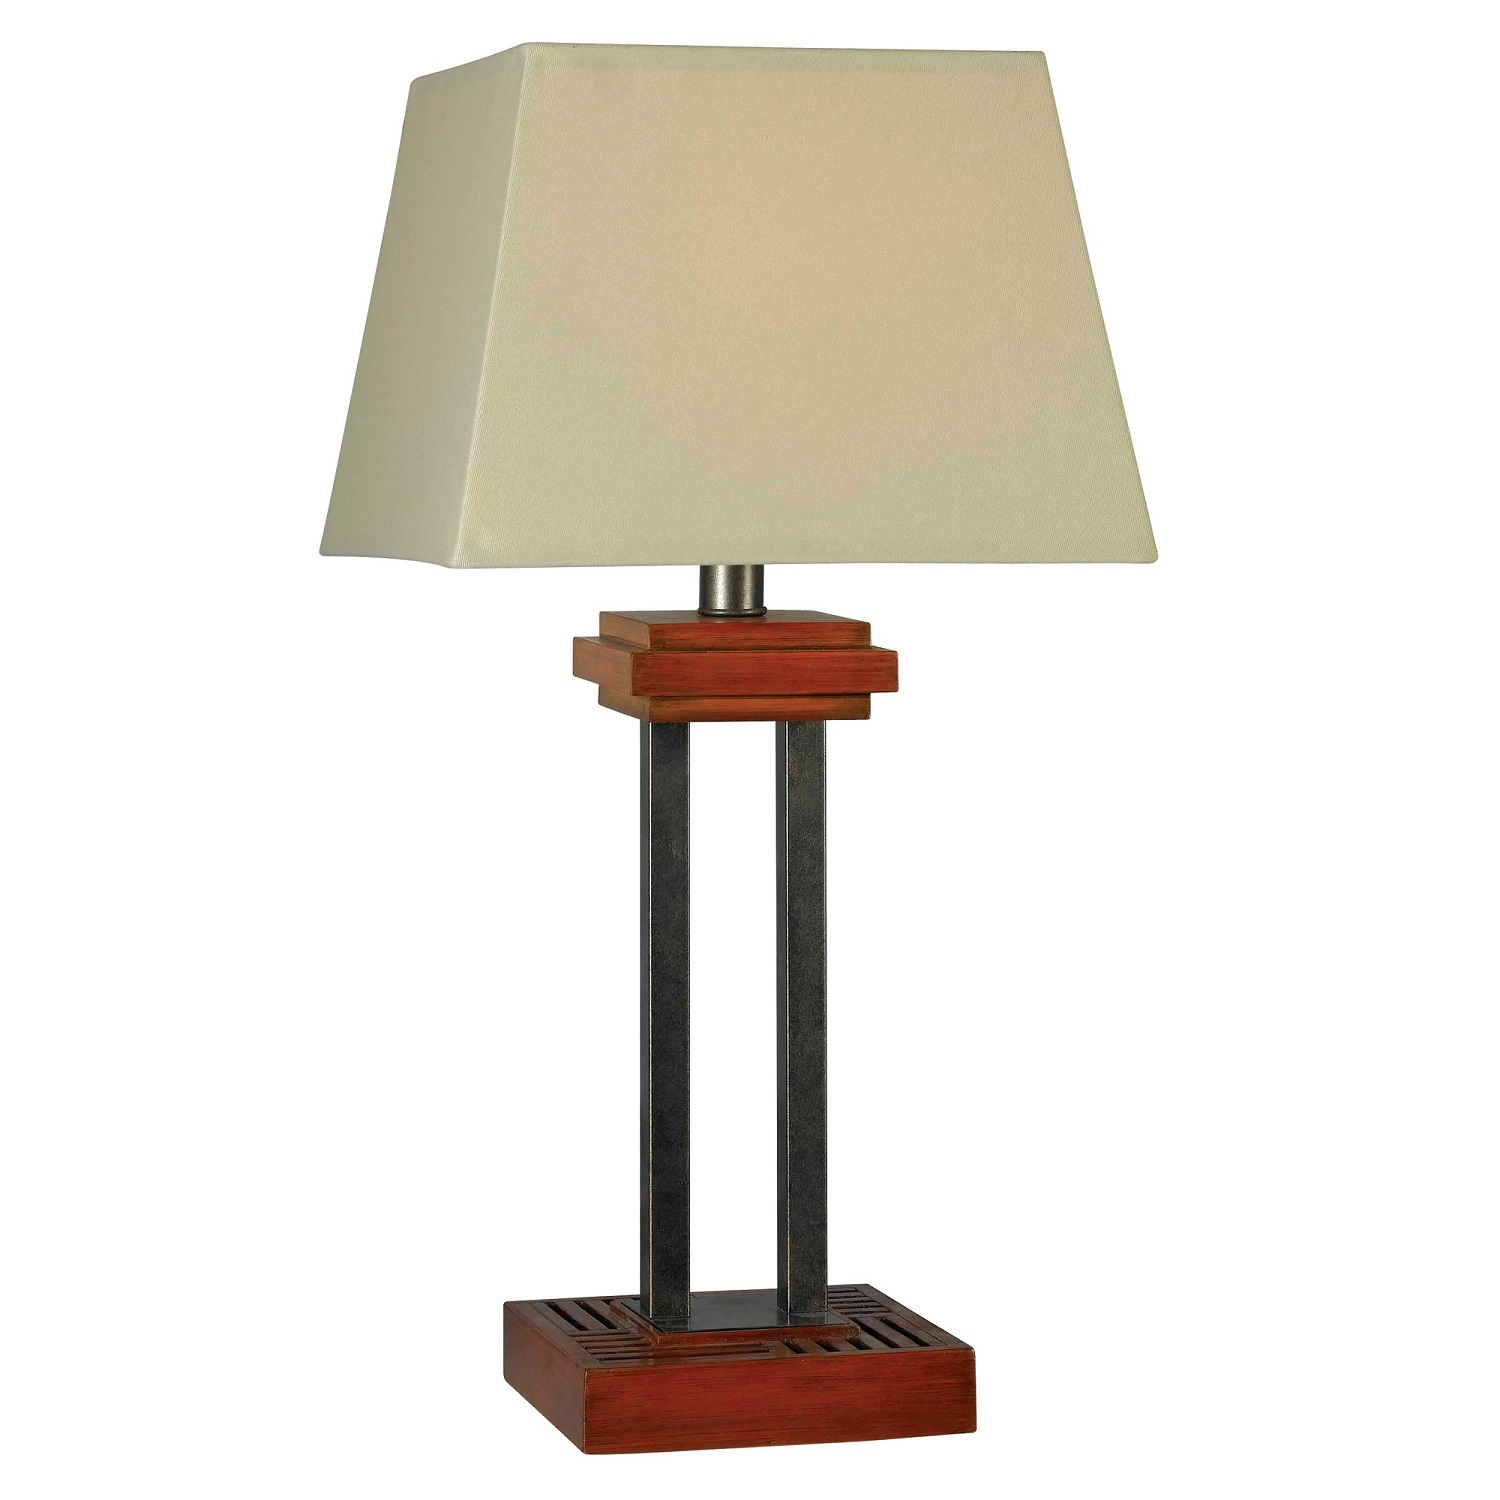 Kenroy home outdoor hadley 1 light table lamp l brilliant - Kenay home lamparas ...